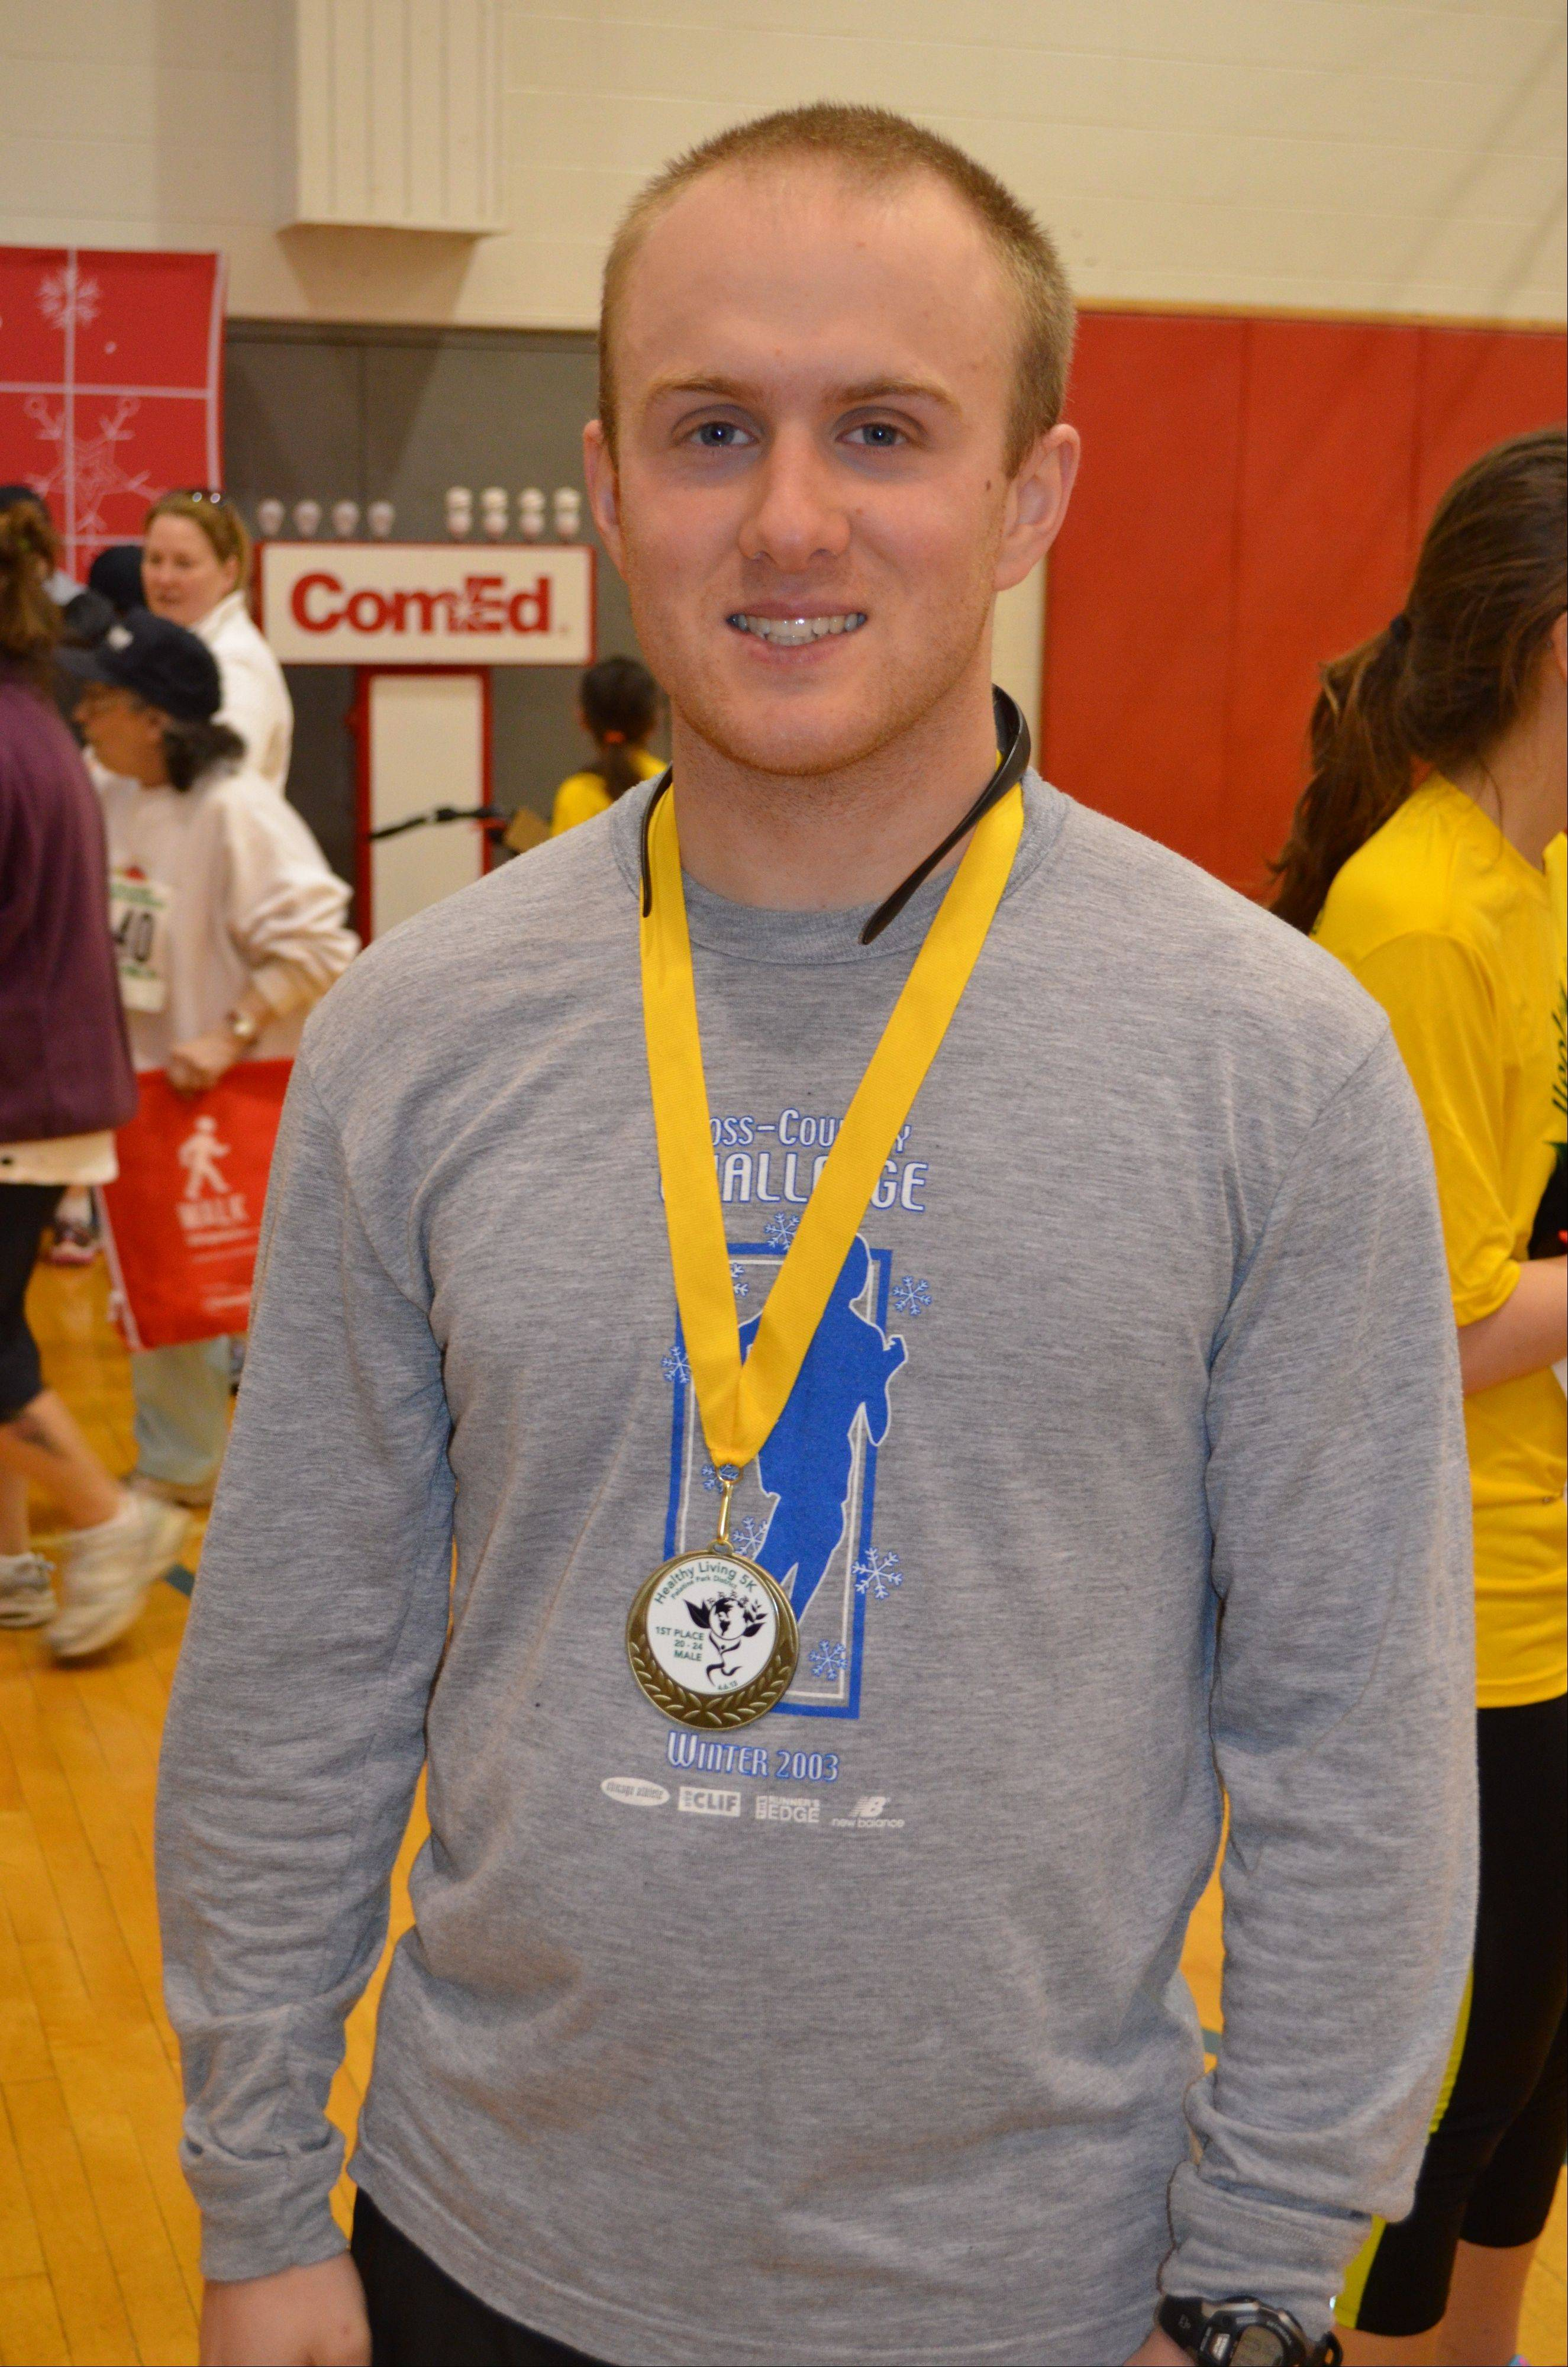 The Palatine Park District hosted a Healthy Living event on April 6. Brian Lane was the first to cross the finish line in the 5K.